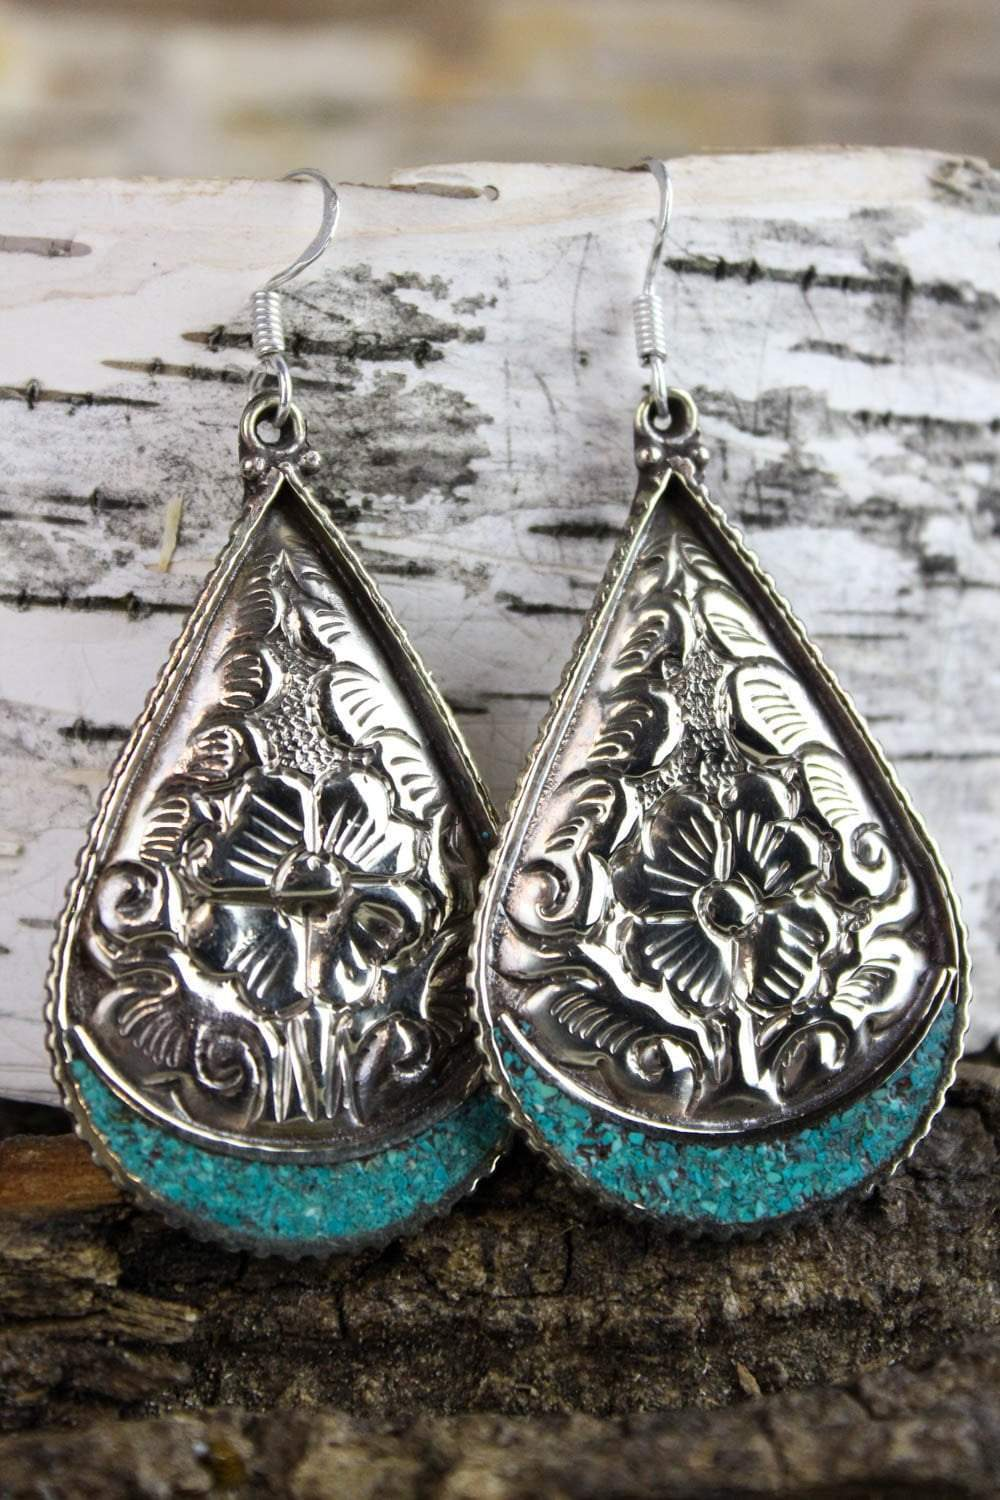 Earrings Silver Floral and Turquoise Teardrop Earrings JE364